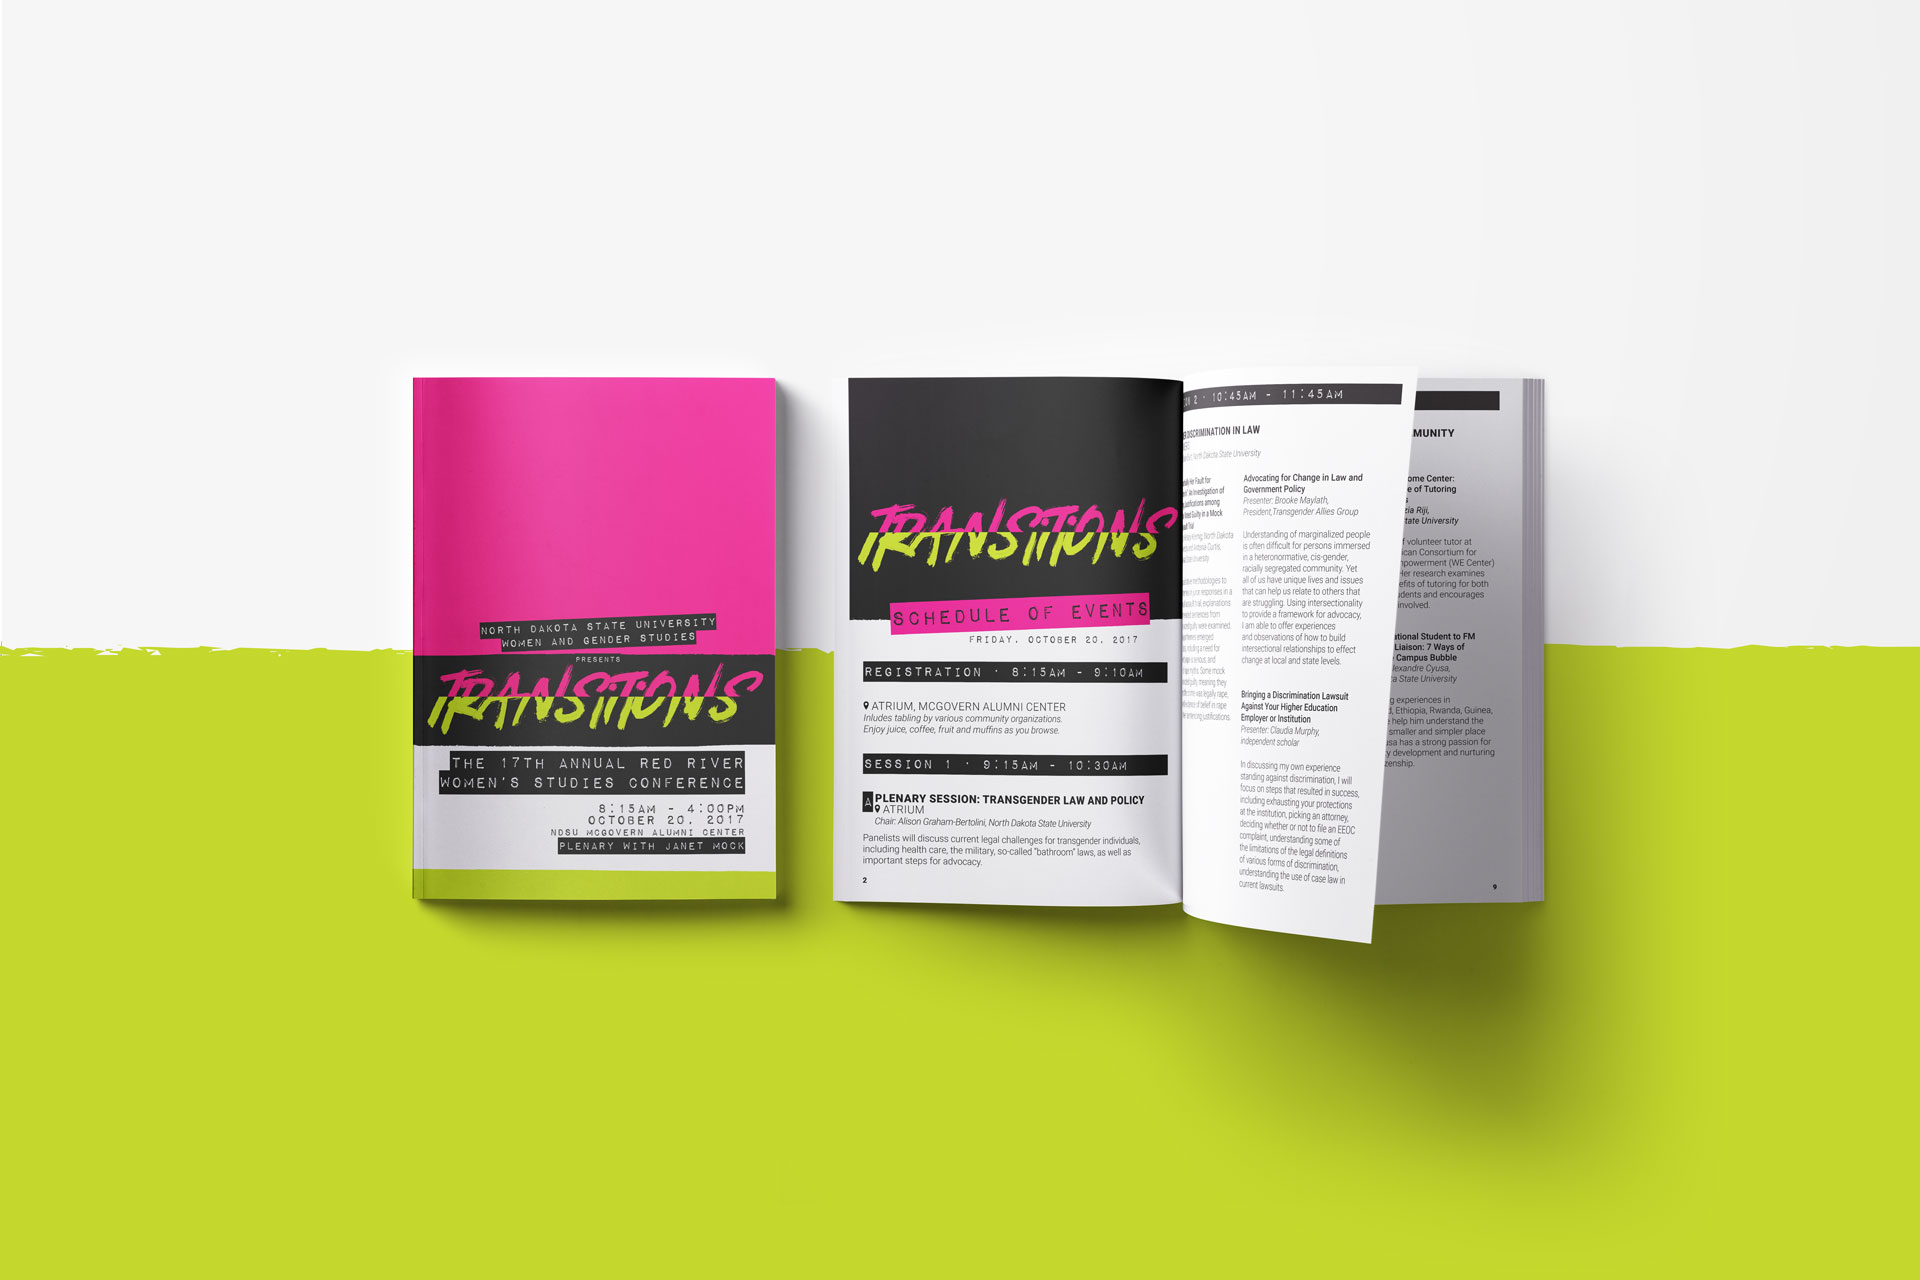 A closed, printed brochure next to an open brochure both in pink, black, and white on a lime green and white background